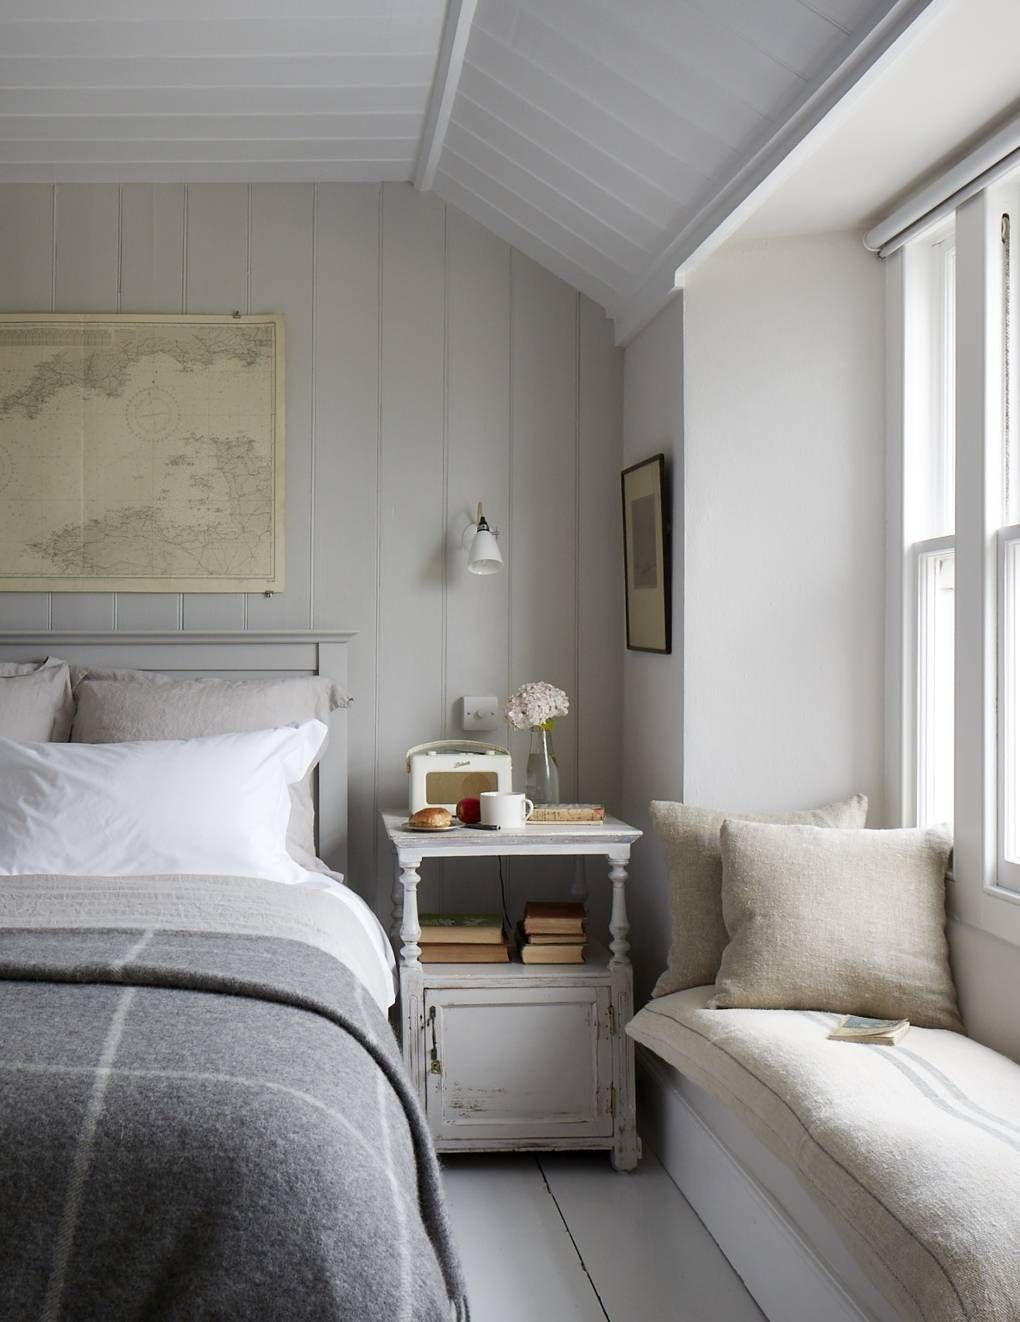 Modern Bedroom Ideas 21 Modern Bedroom Ideas You Ll Love Reconsider Lights Swap A Bedside Light Fo Coastal Bedroom Decorating Luxury Cottage Bedroom Design